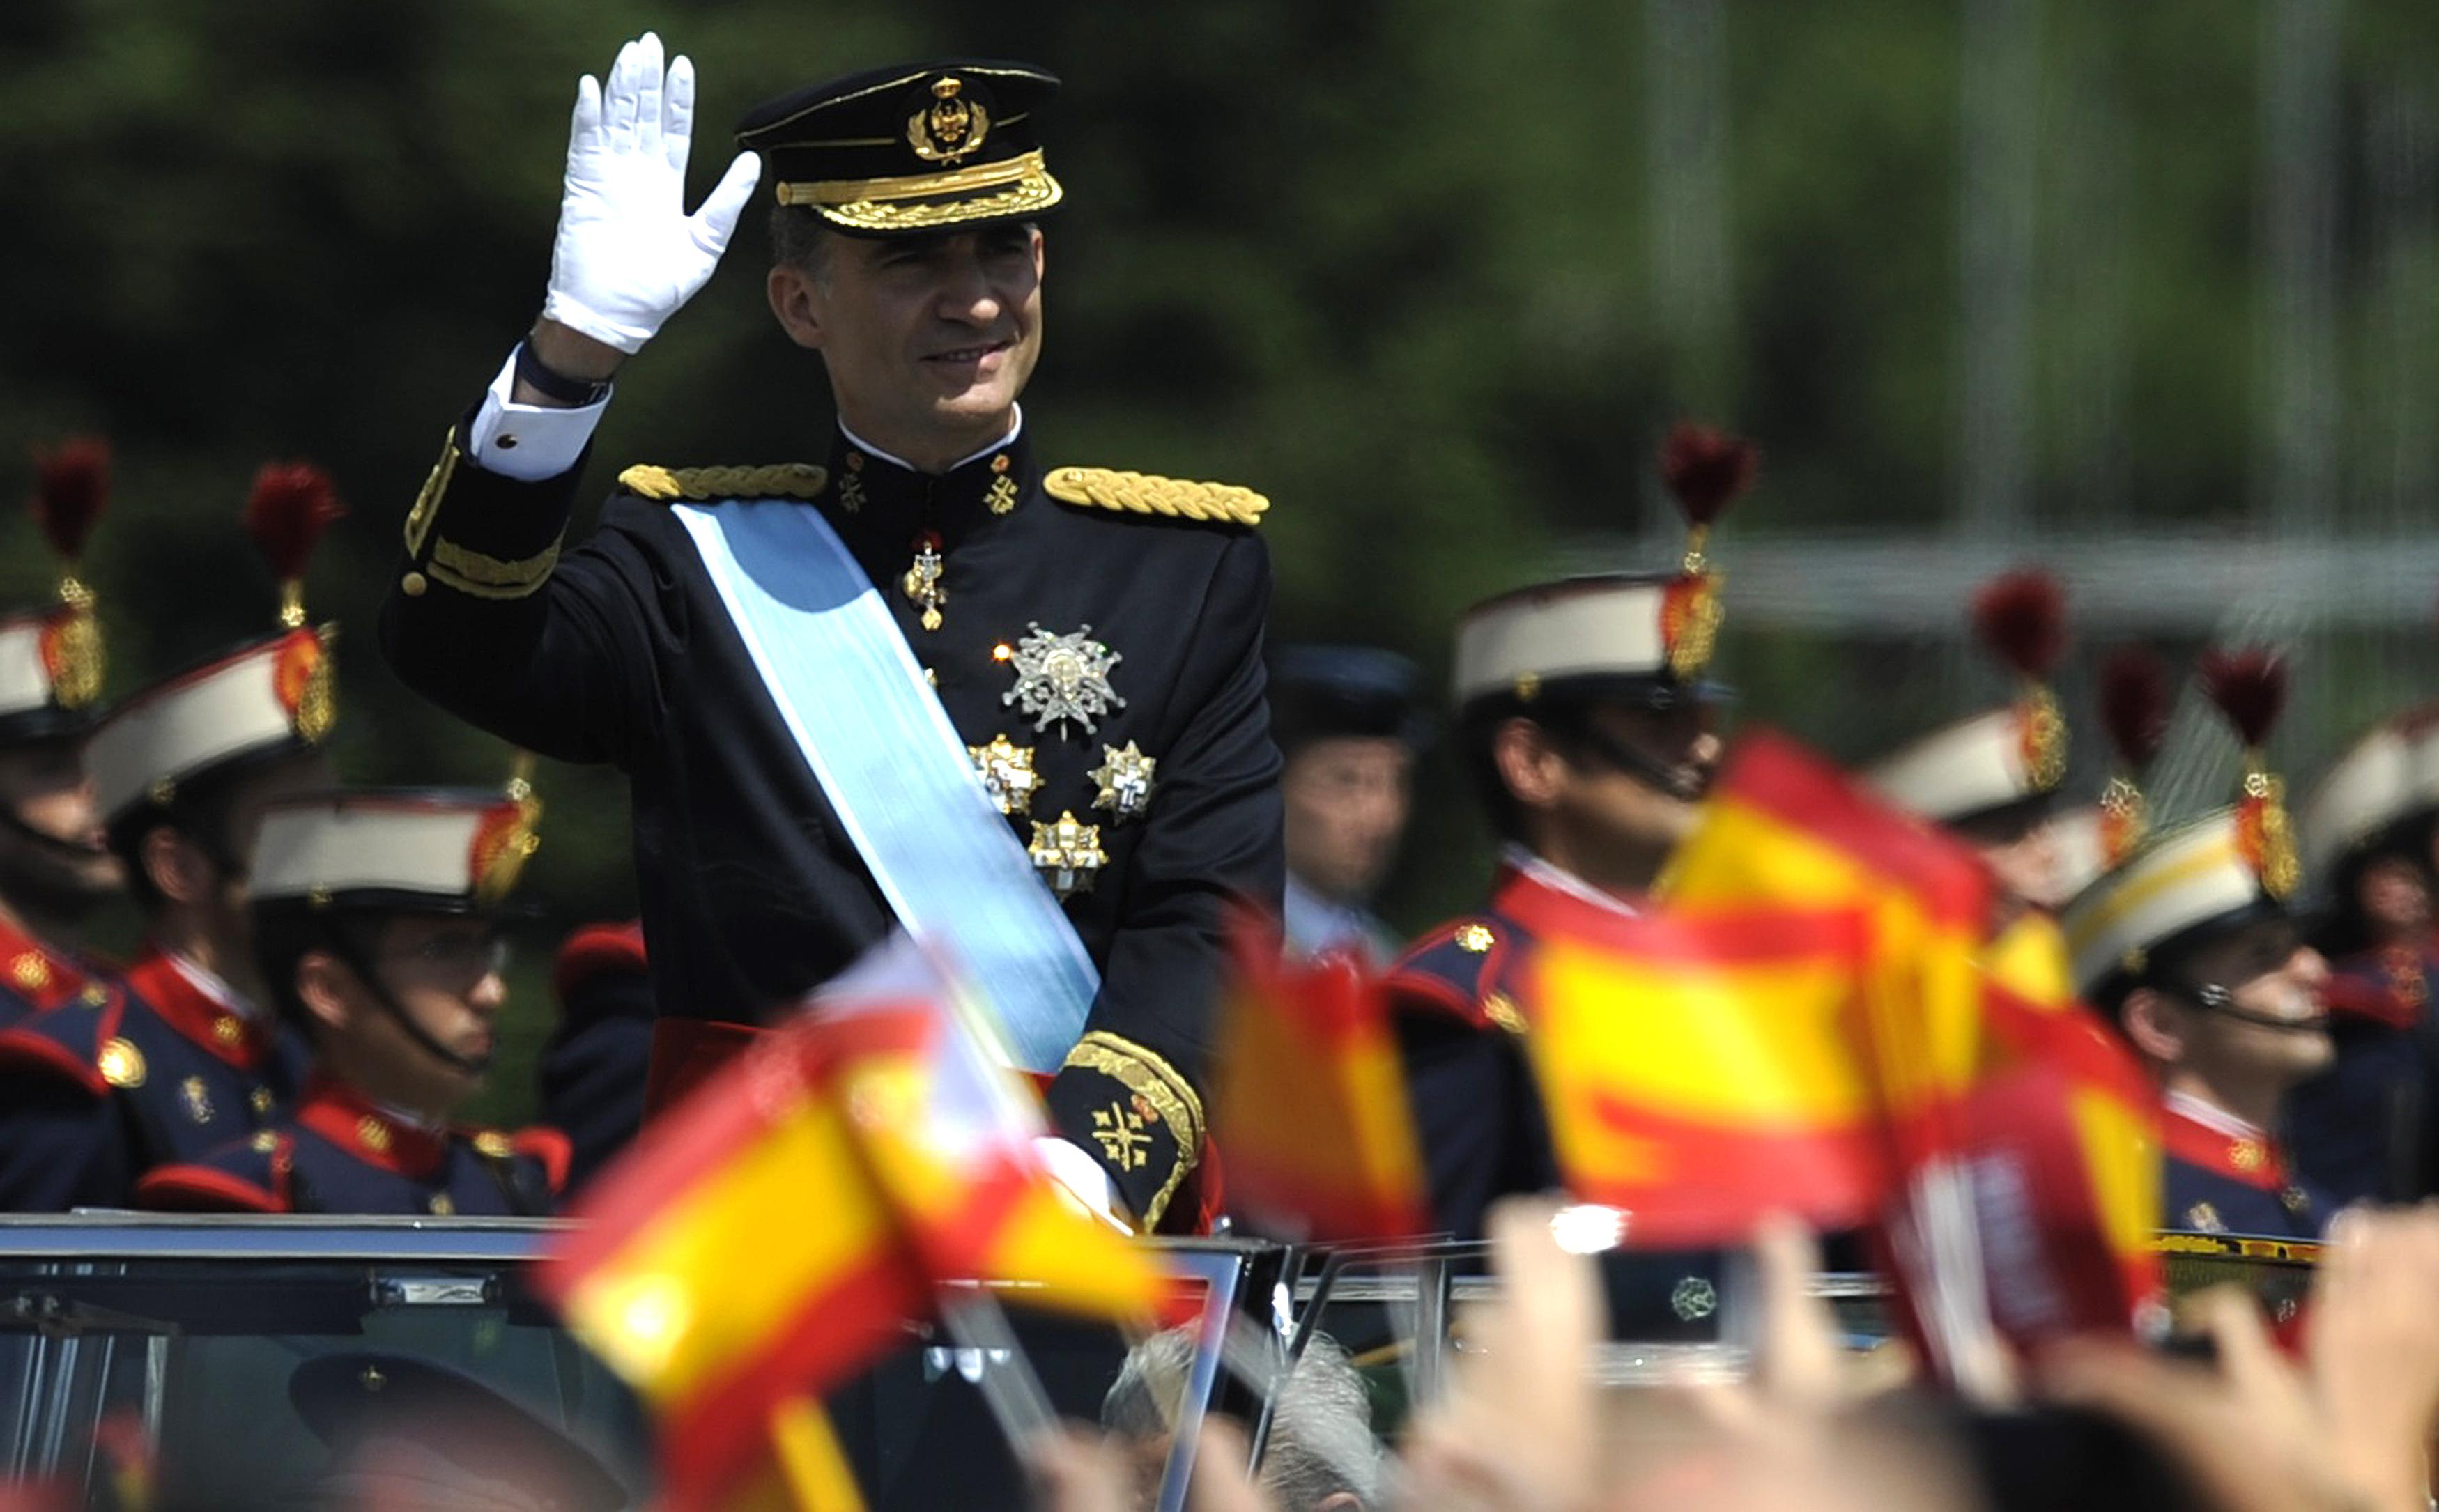 King of Spain photos